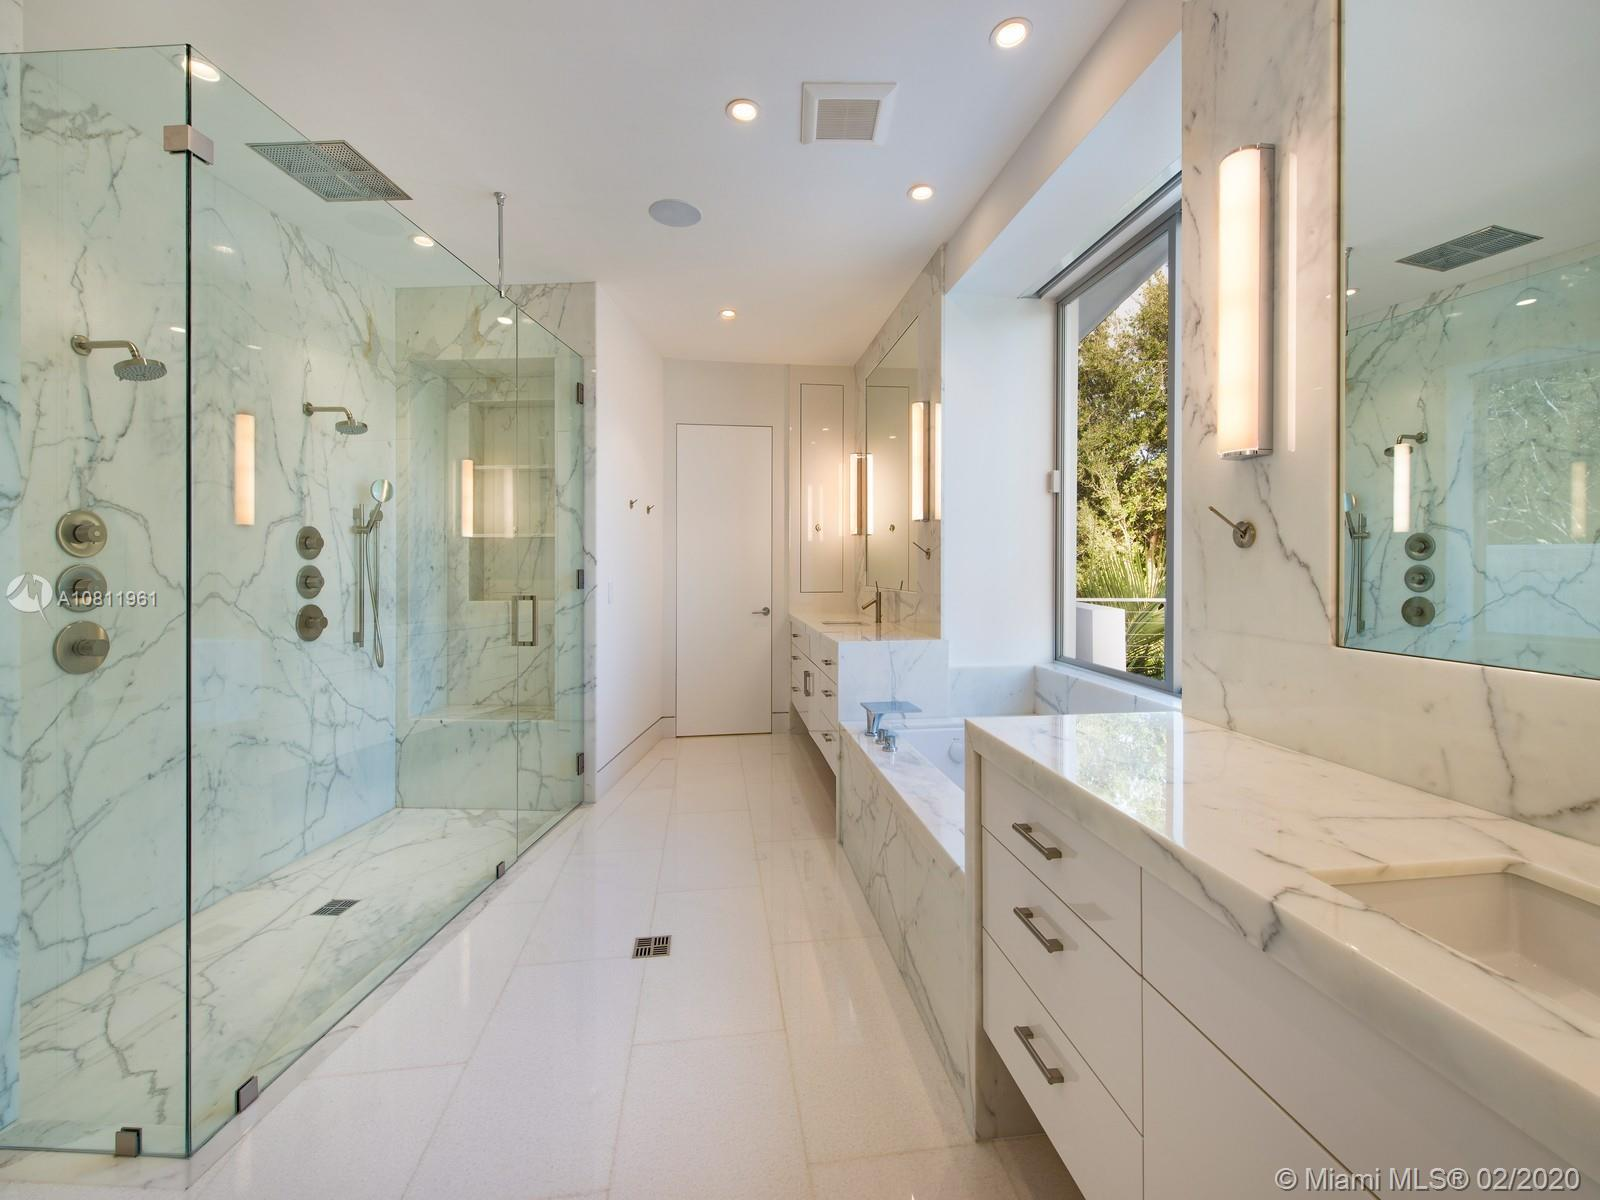 Master bedroom bathroom features calacatta gold marble and Hansgrohe fixtures.